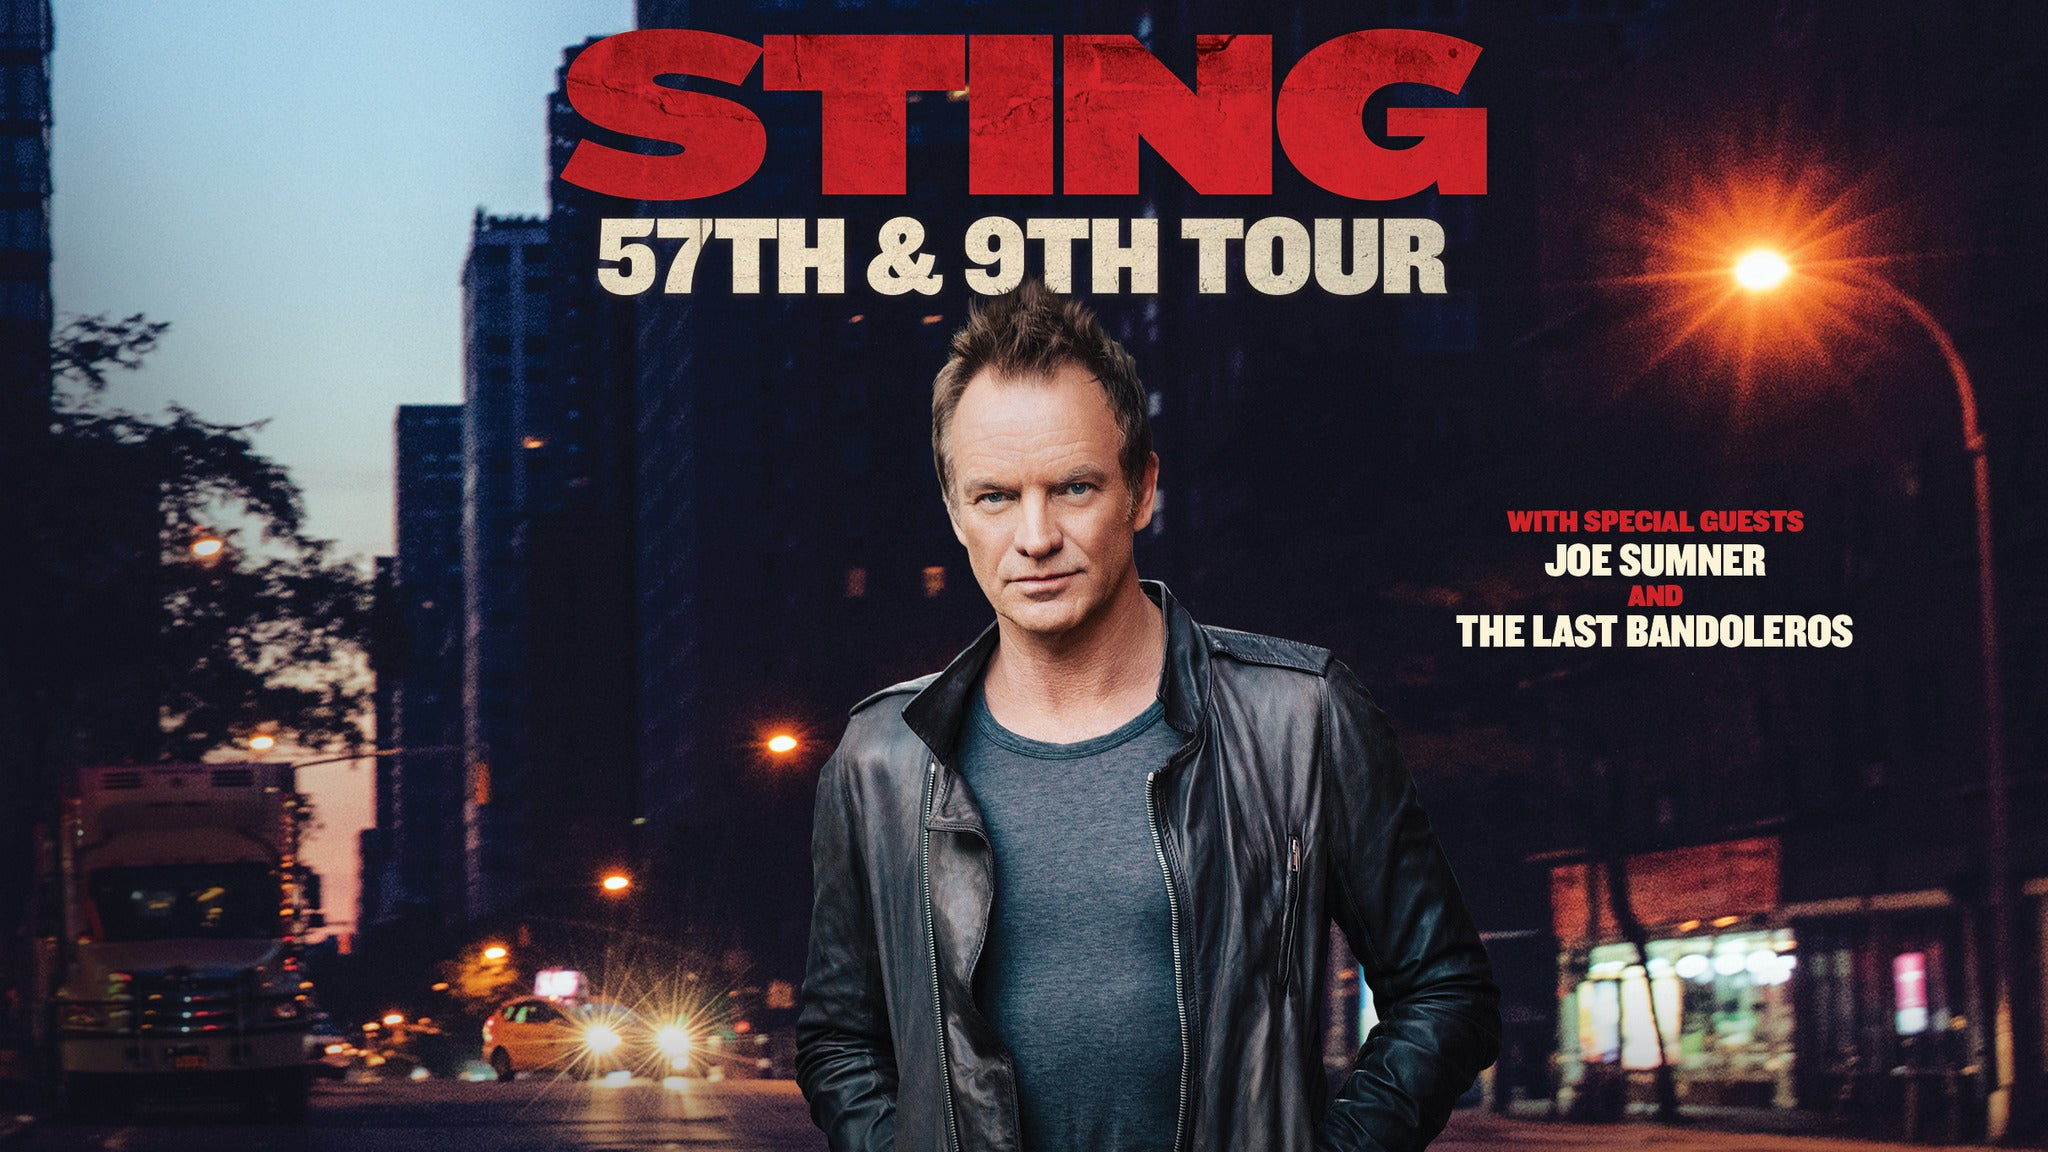 Sting 57th & 9th Tour at The Masonic